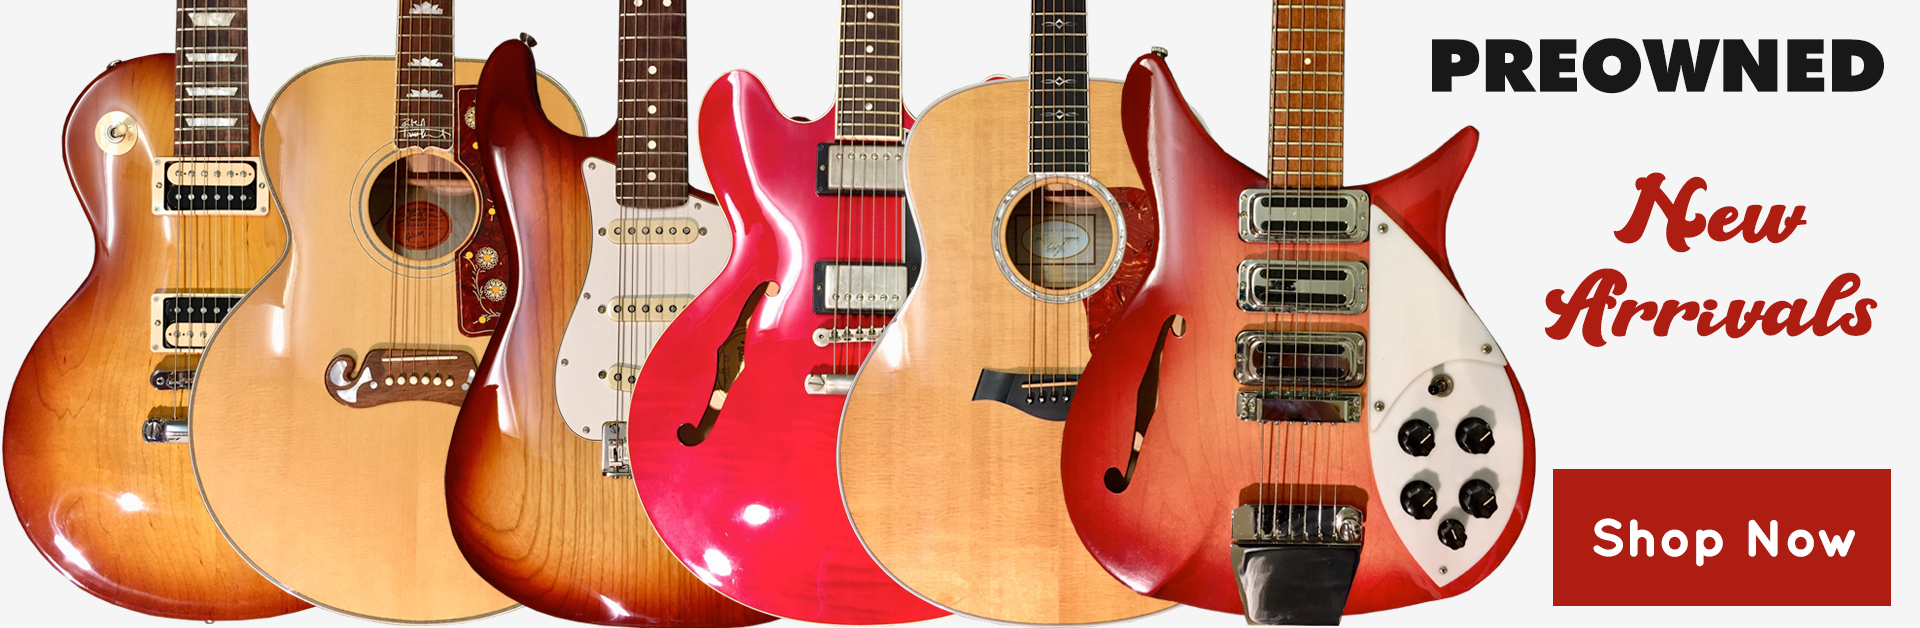 Preowned Guitars - In Stock Now